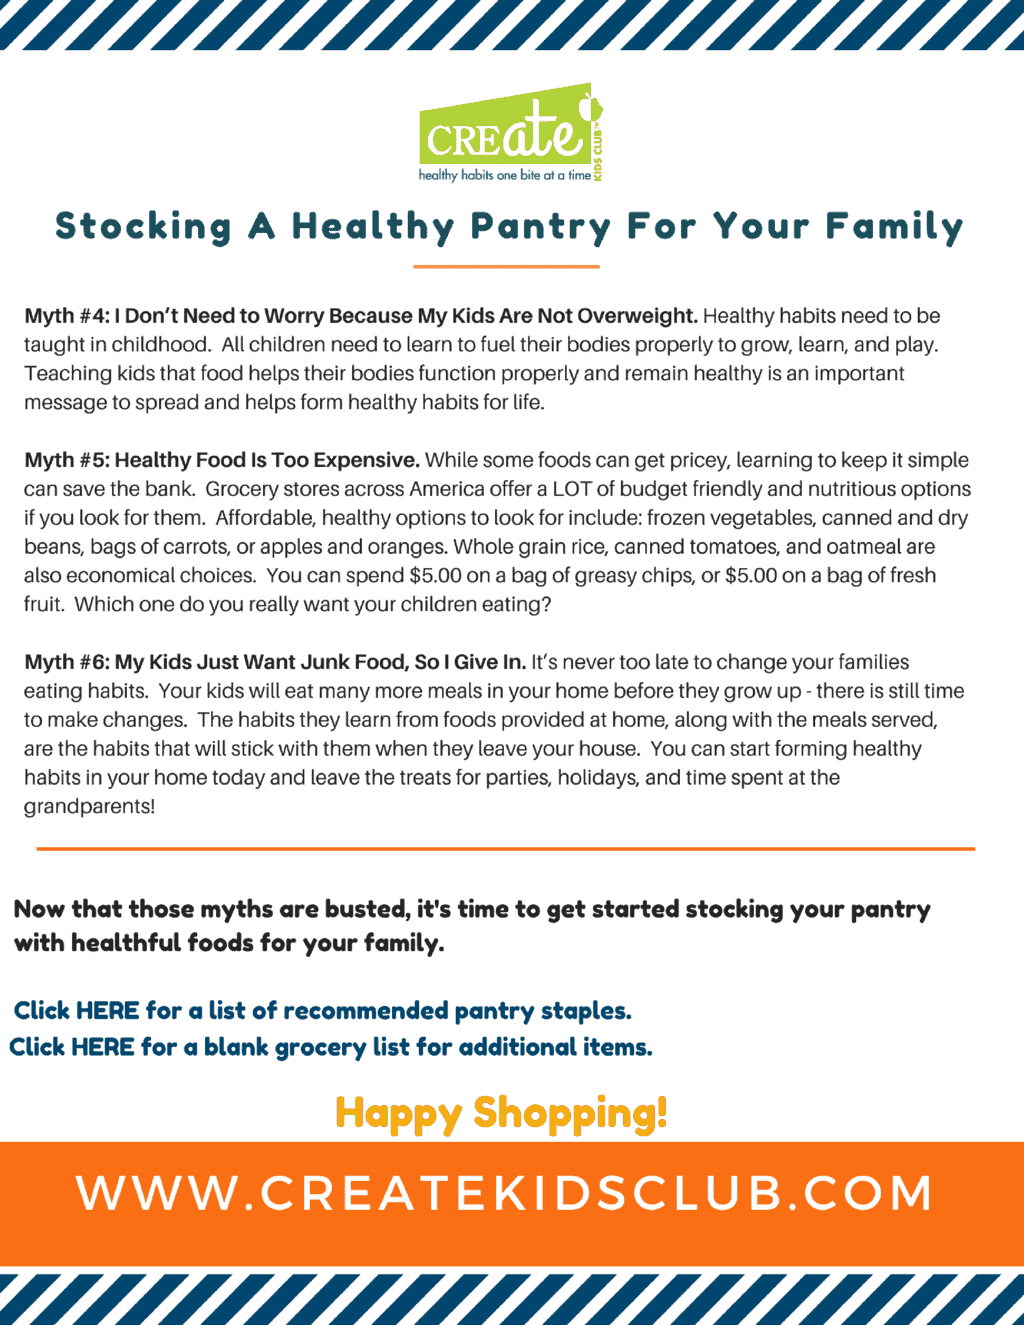 info on stocking a healthy pantry.